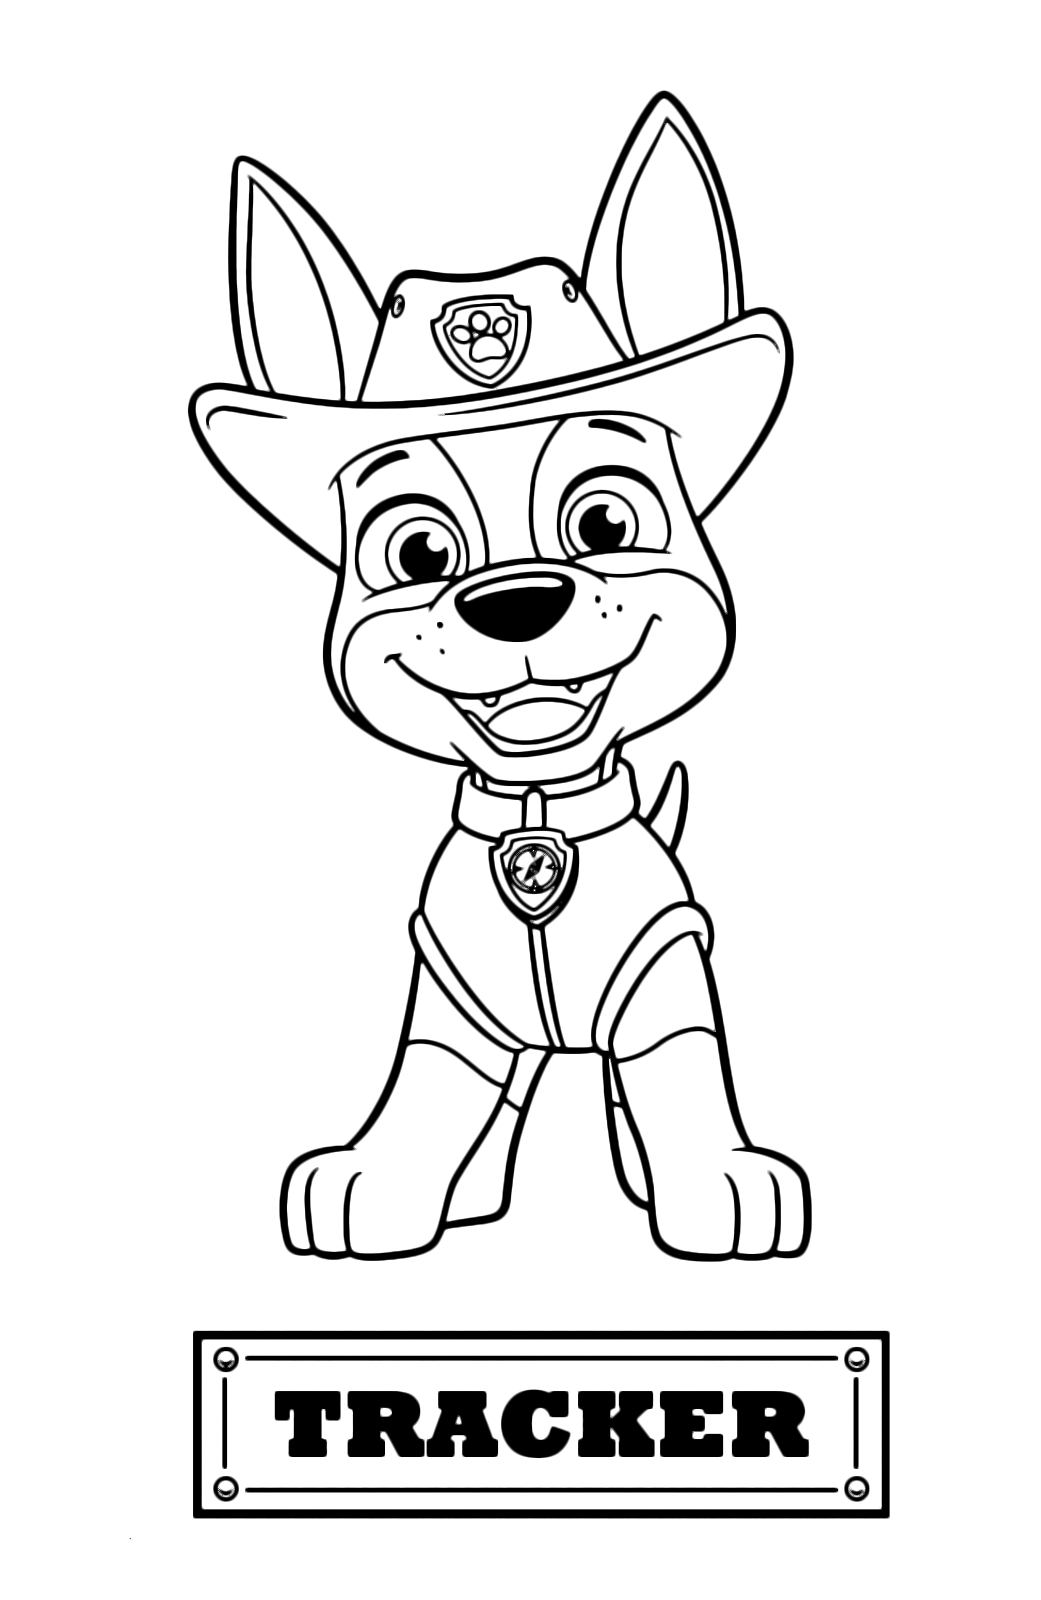 paw patrol free coloring pages printable free paw patrol coloring pages at getdrawings free download coloring pages free paw printable patrol